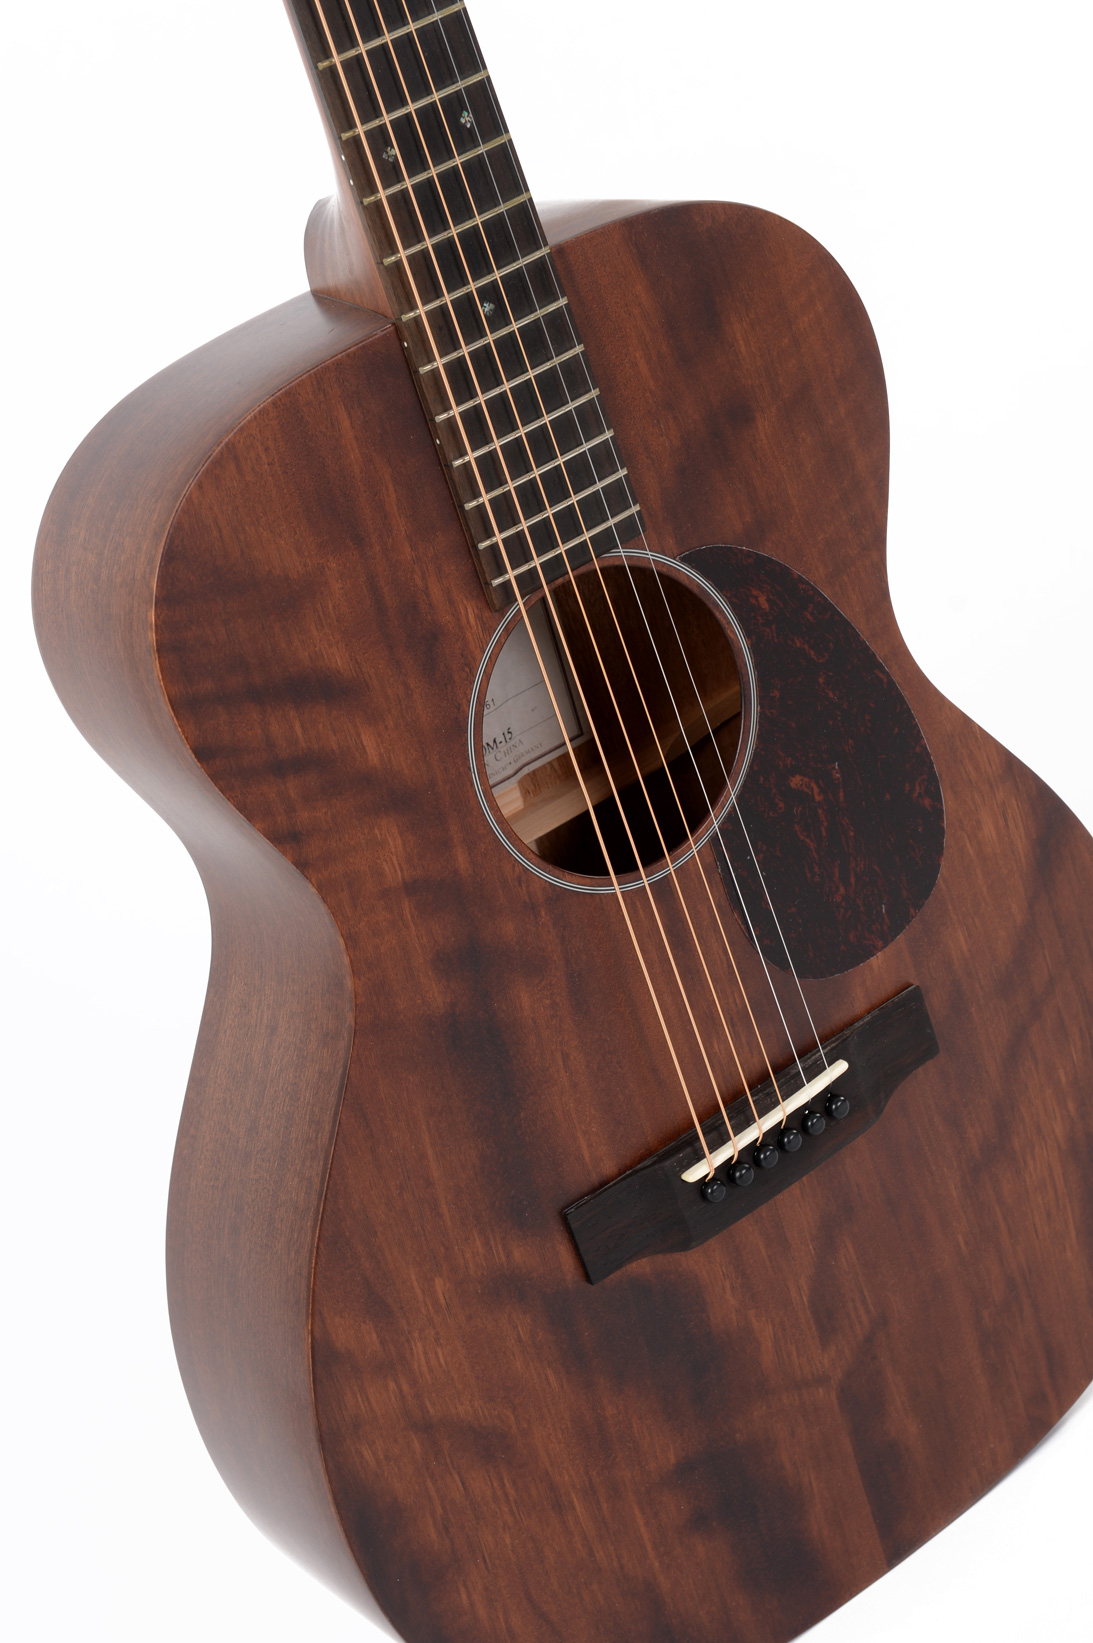 sigma guitars 00m-15 – 15er series